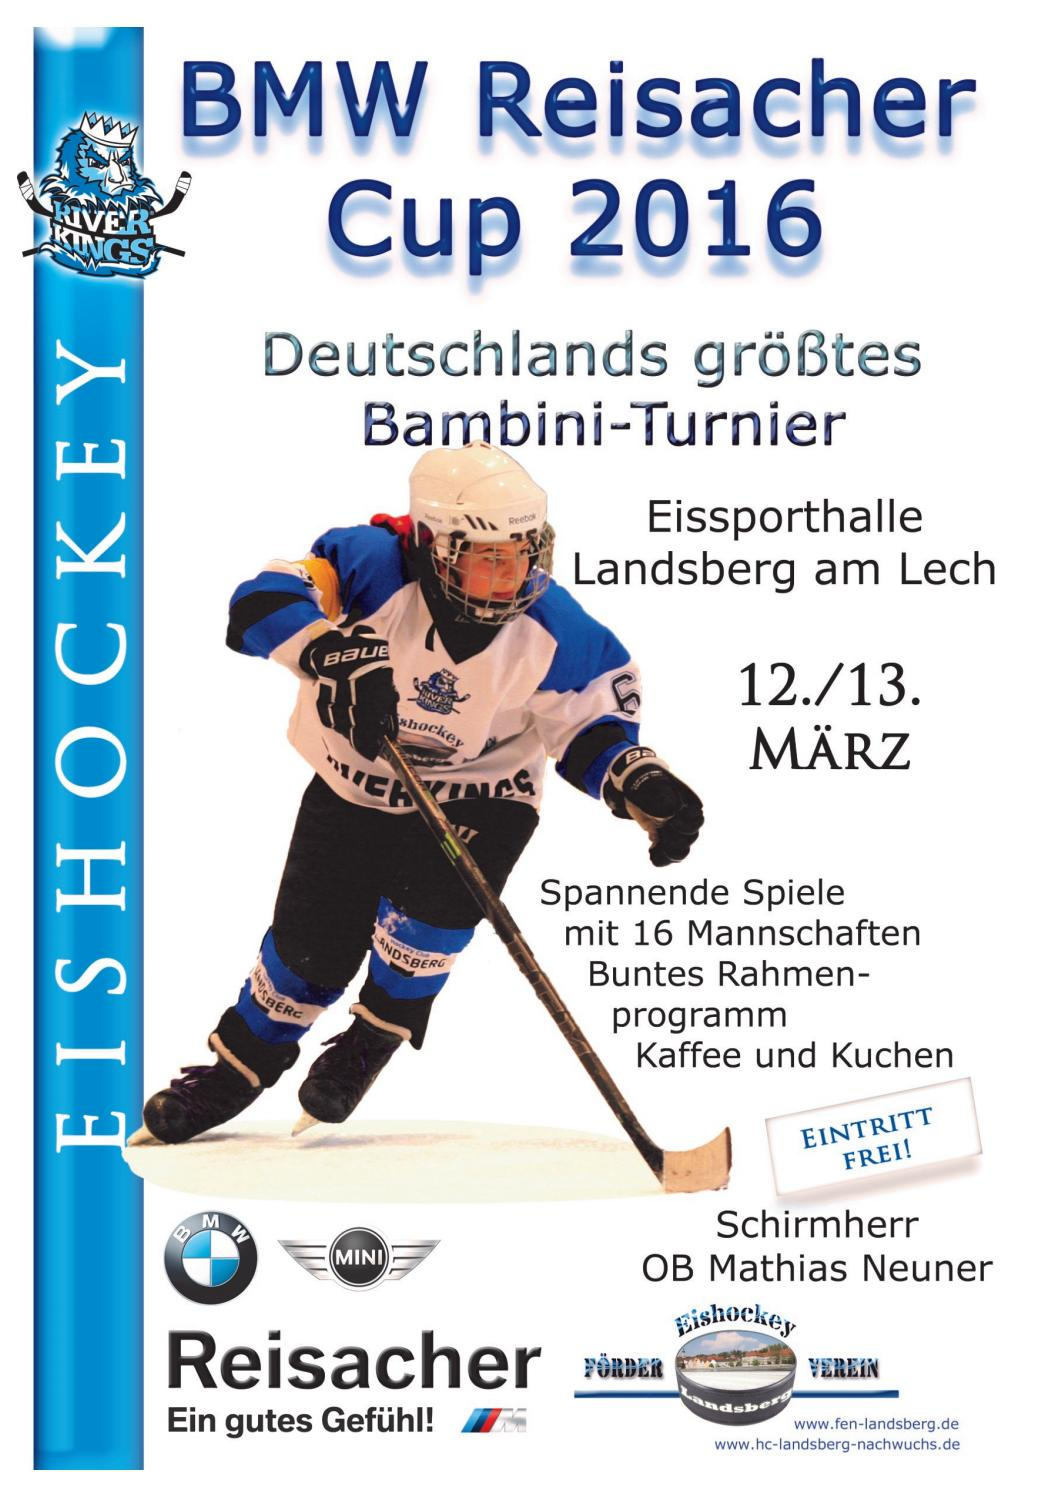 BMW Reisacher Cup 2016 by Eishockey Landsberg - issuu